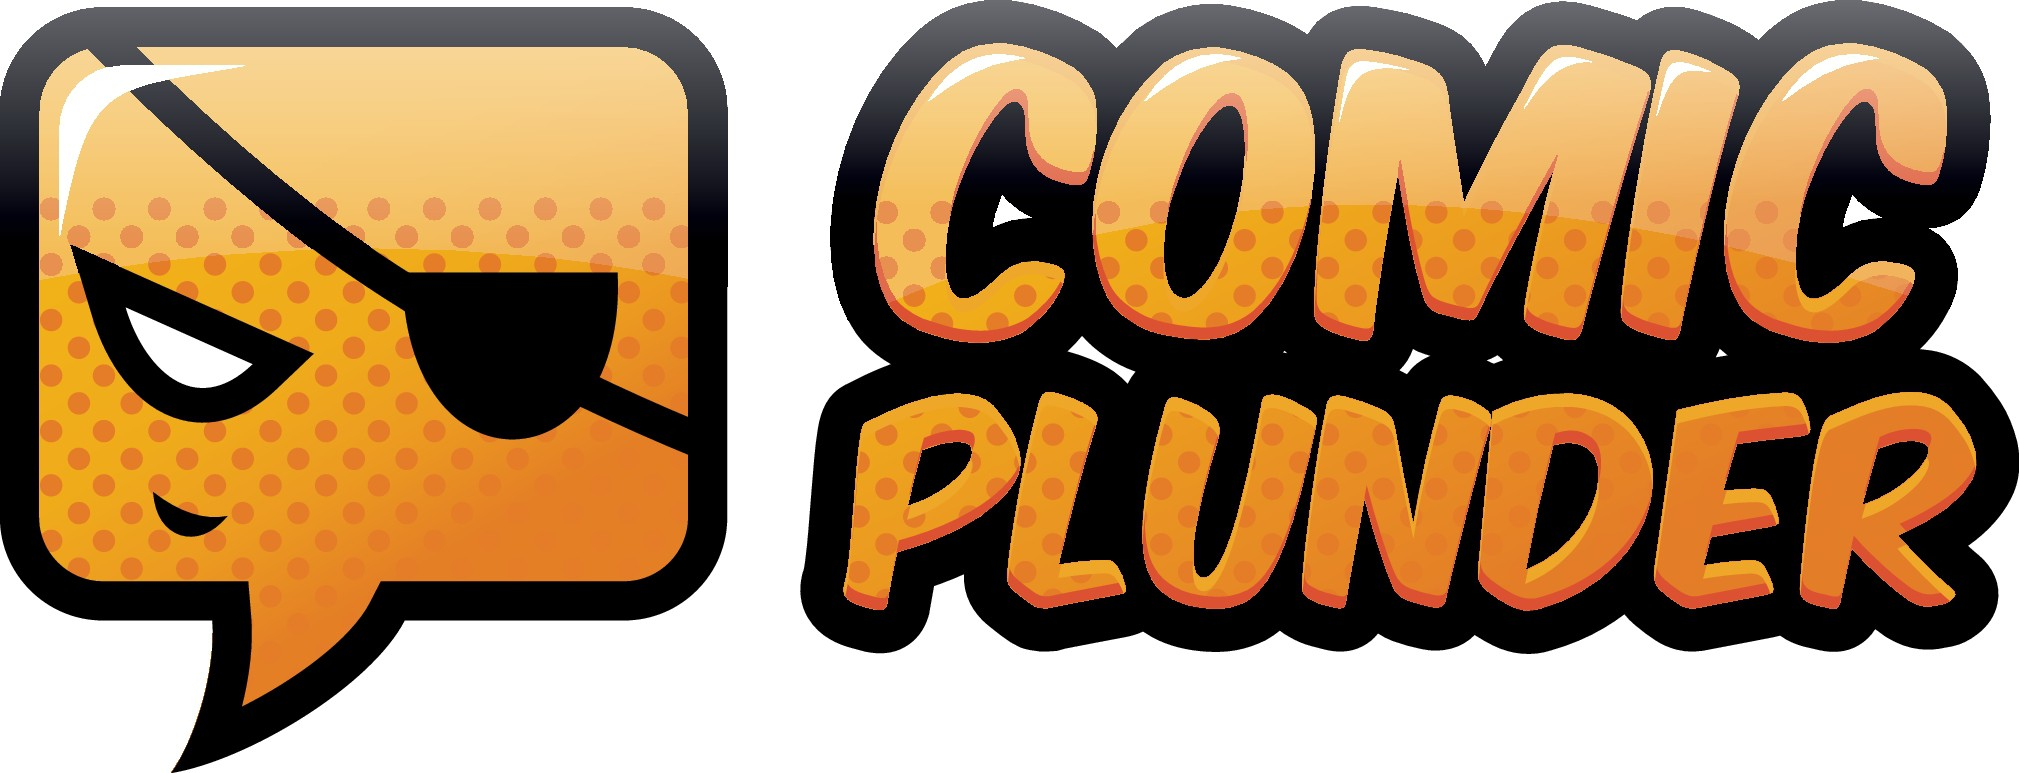 Create a logo that captures the essence of Comic Plunder